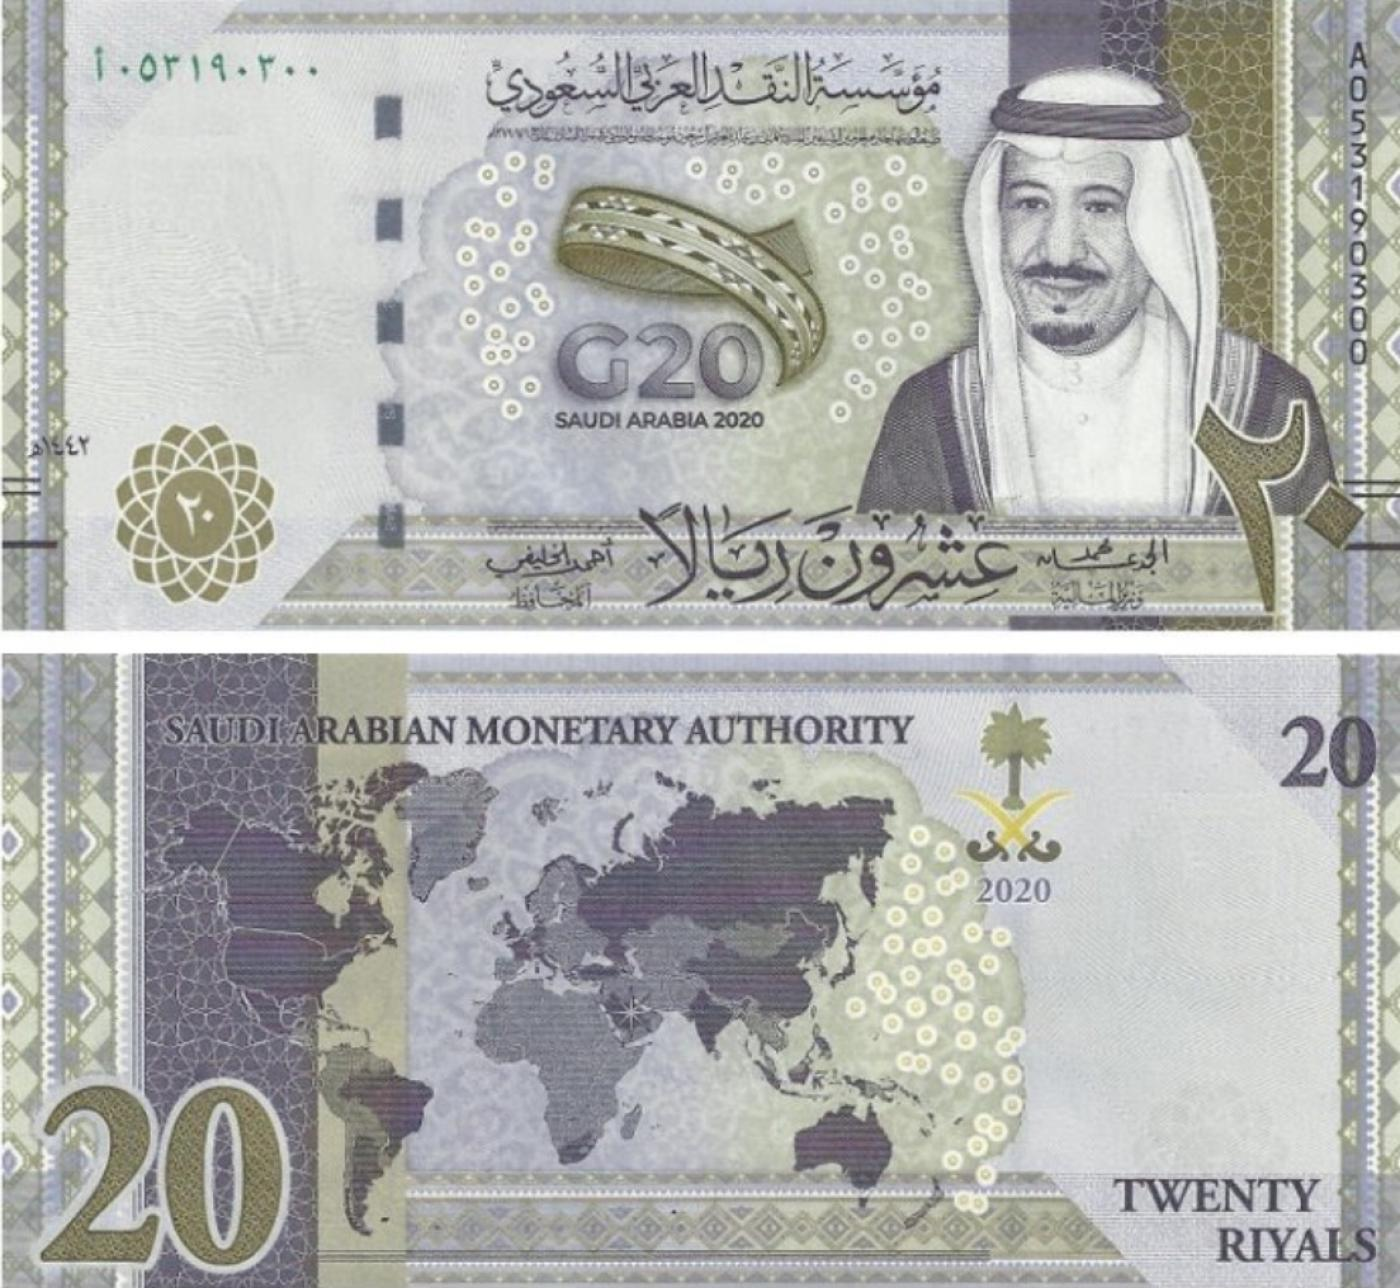 Saudi G20 banknote angers India by showing independent Kashmir